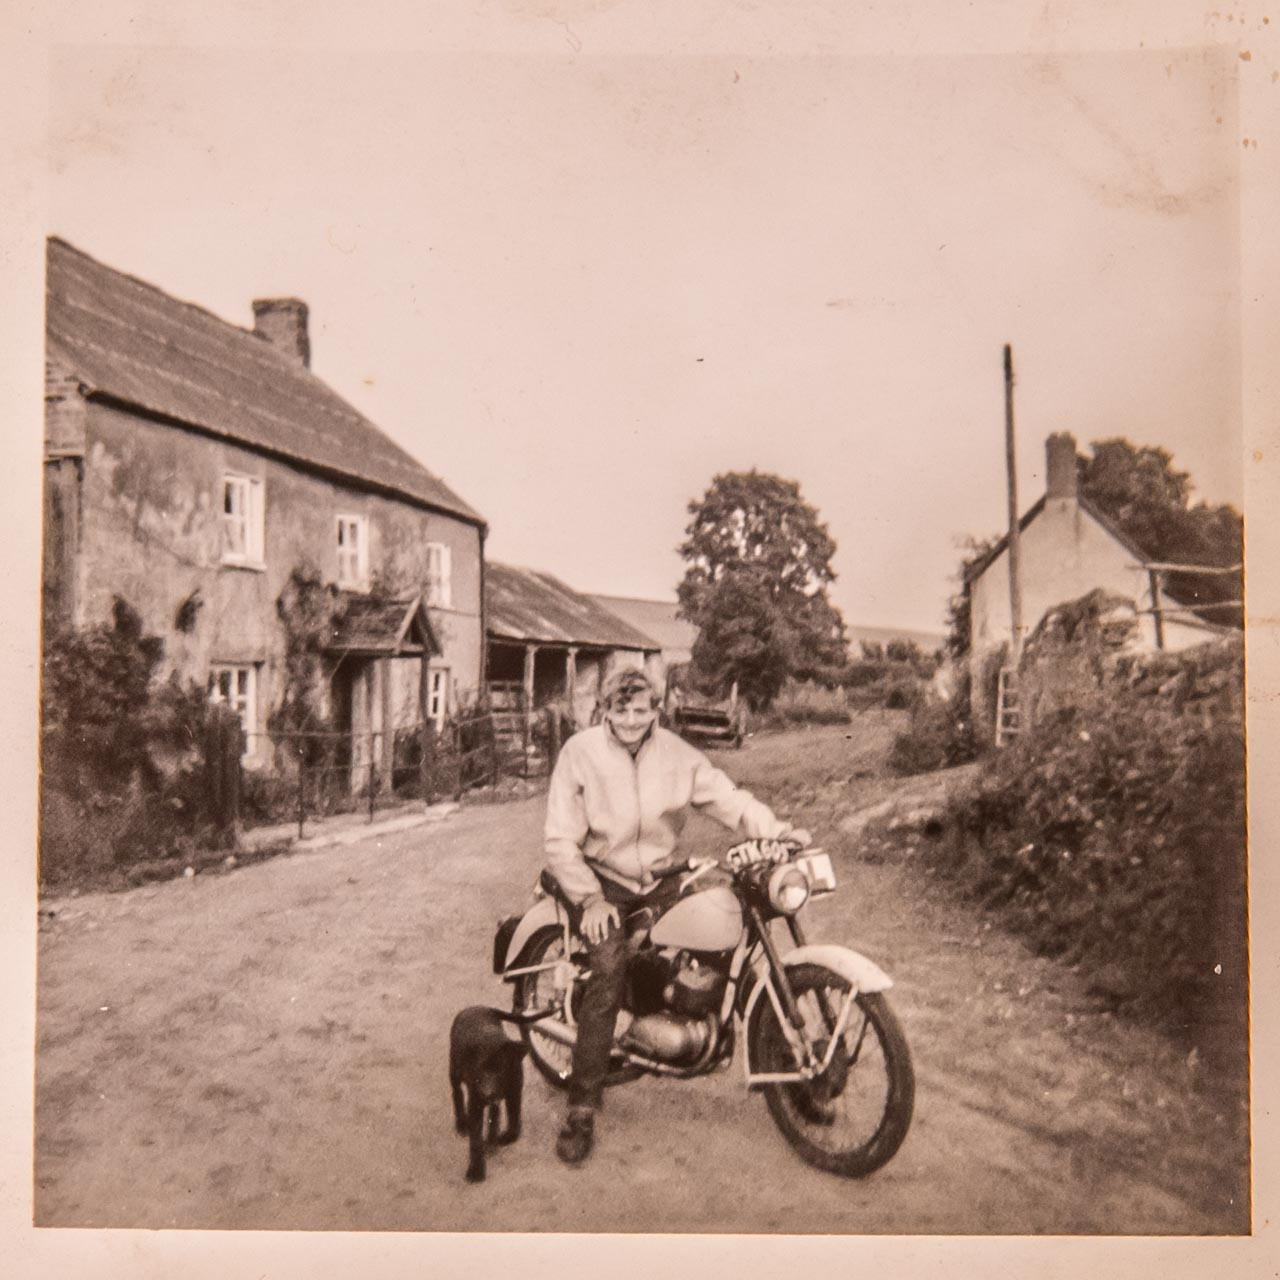 Mike aged 18 on his BSA Bantam 125, with Eric's dog Nipper alongside